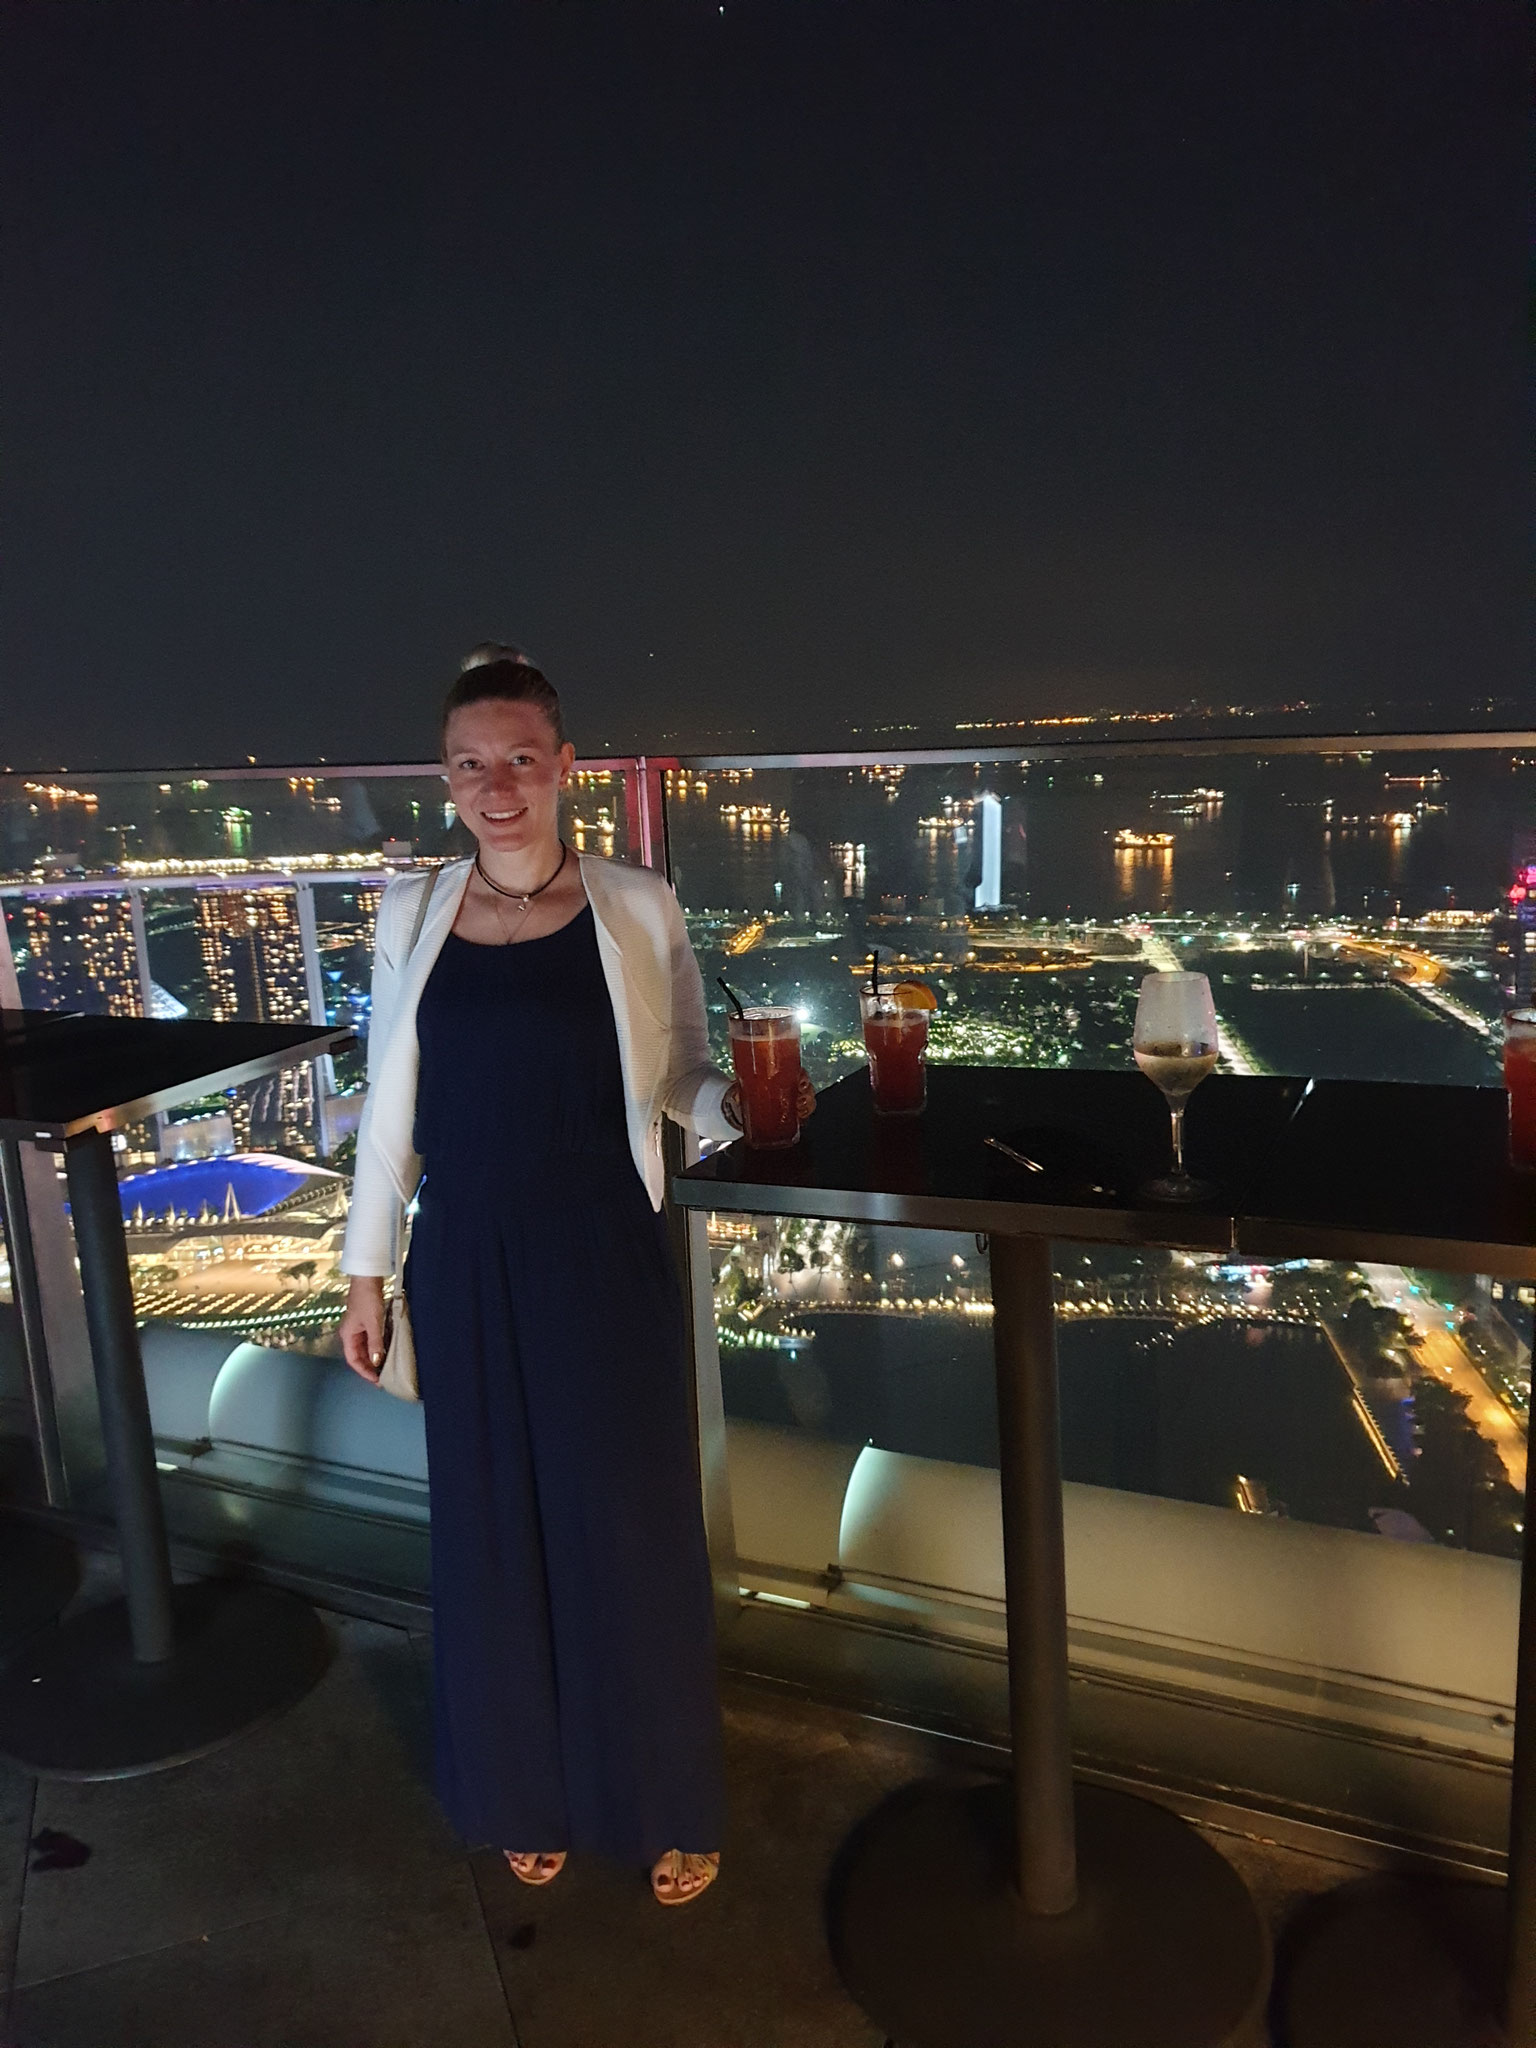 Altitude Bar in Singapur